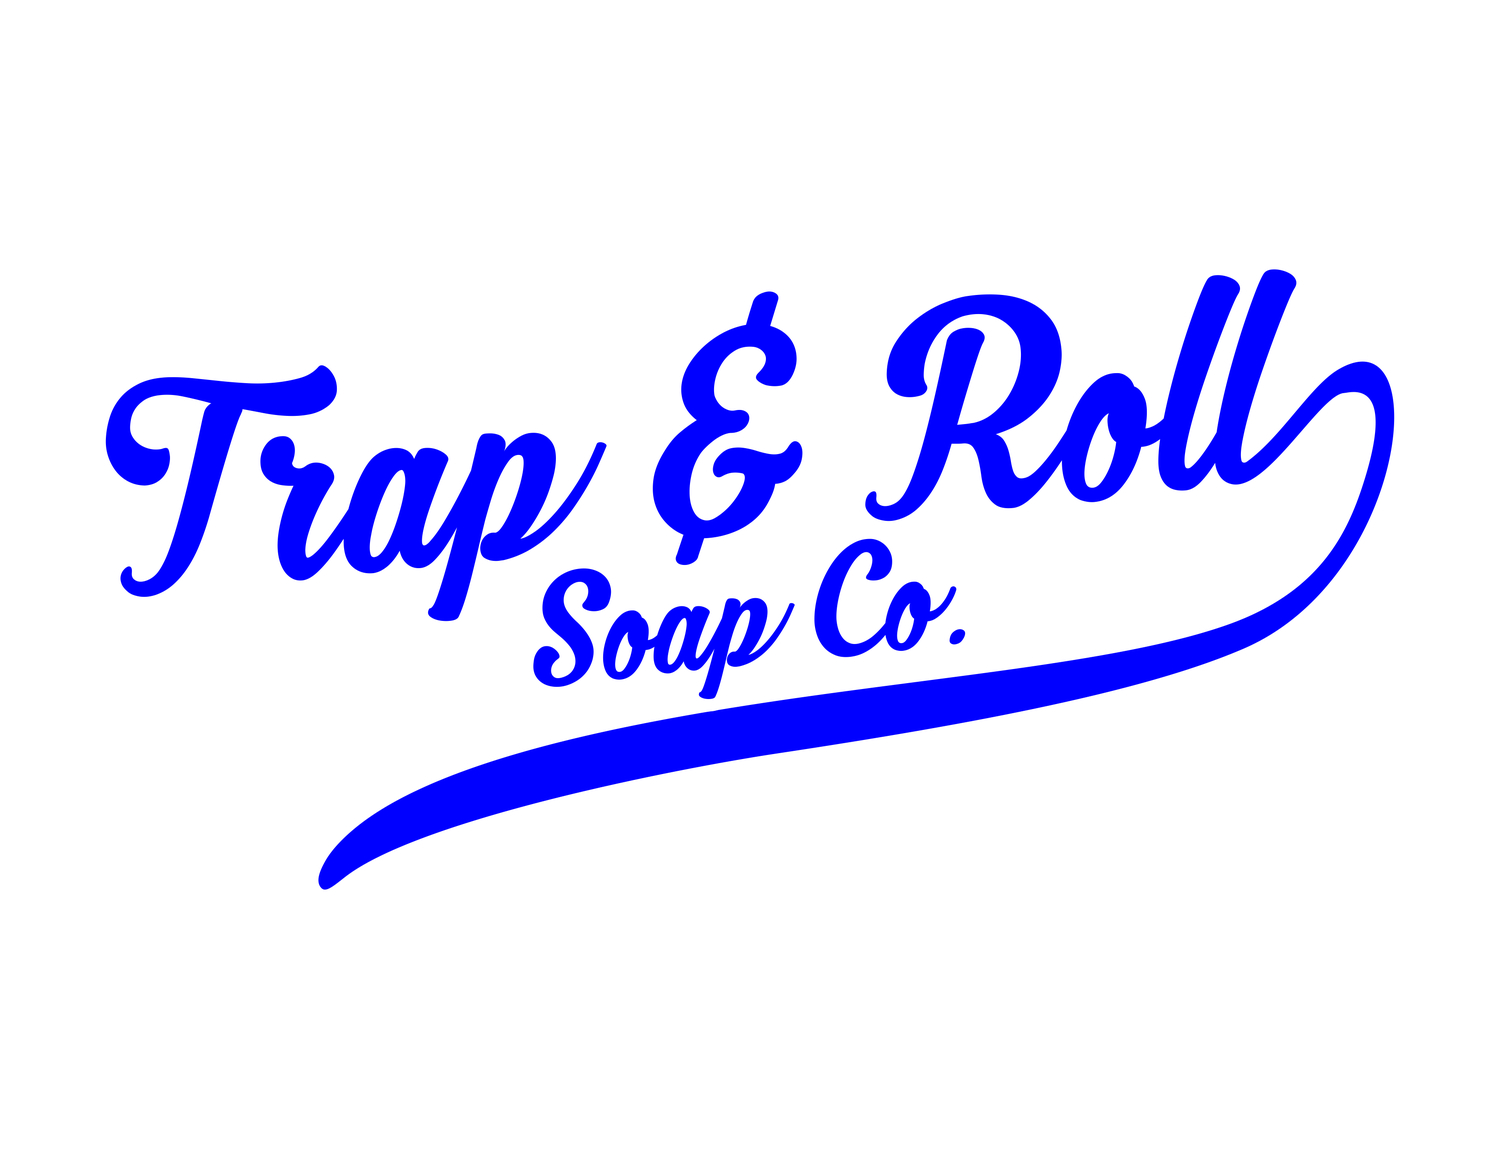 Trap and Roll Soap company